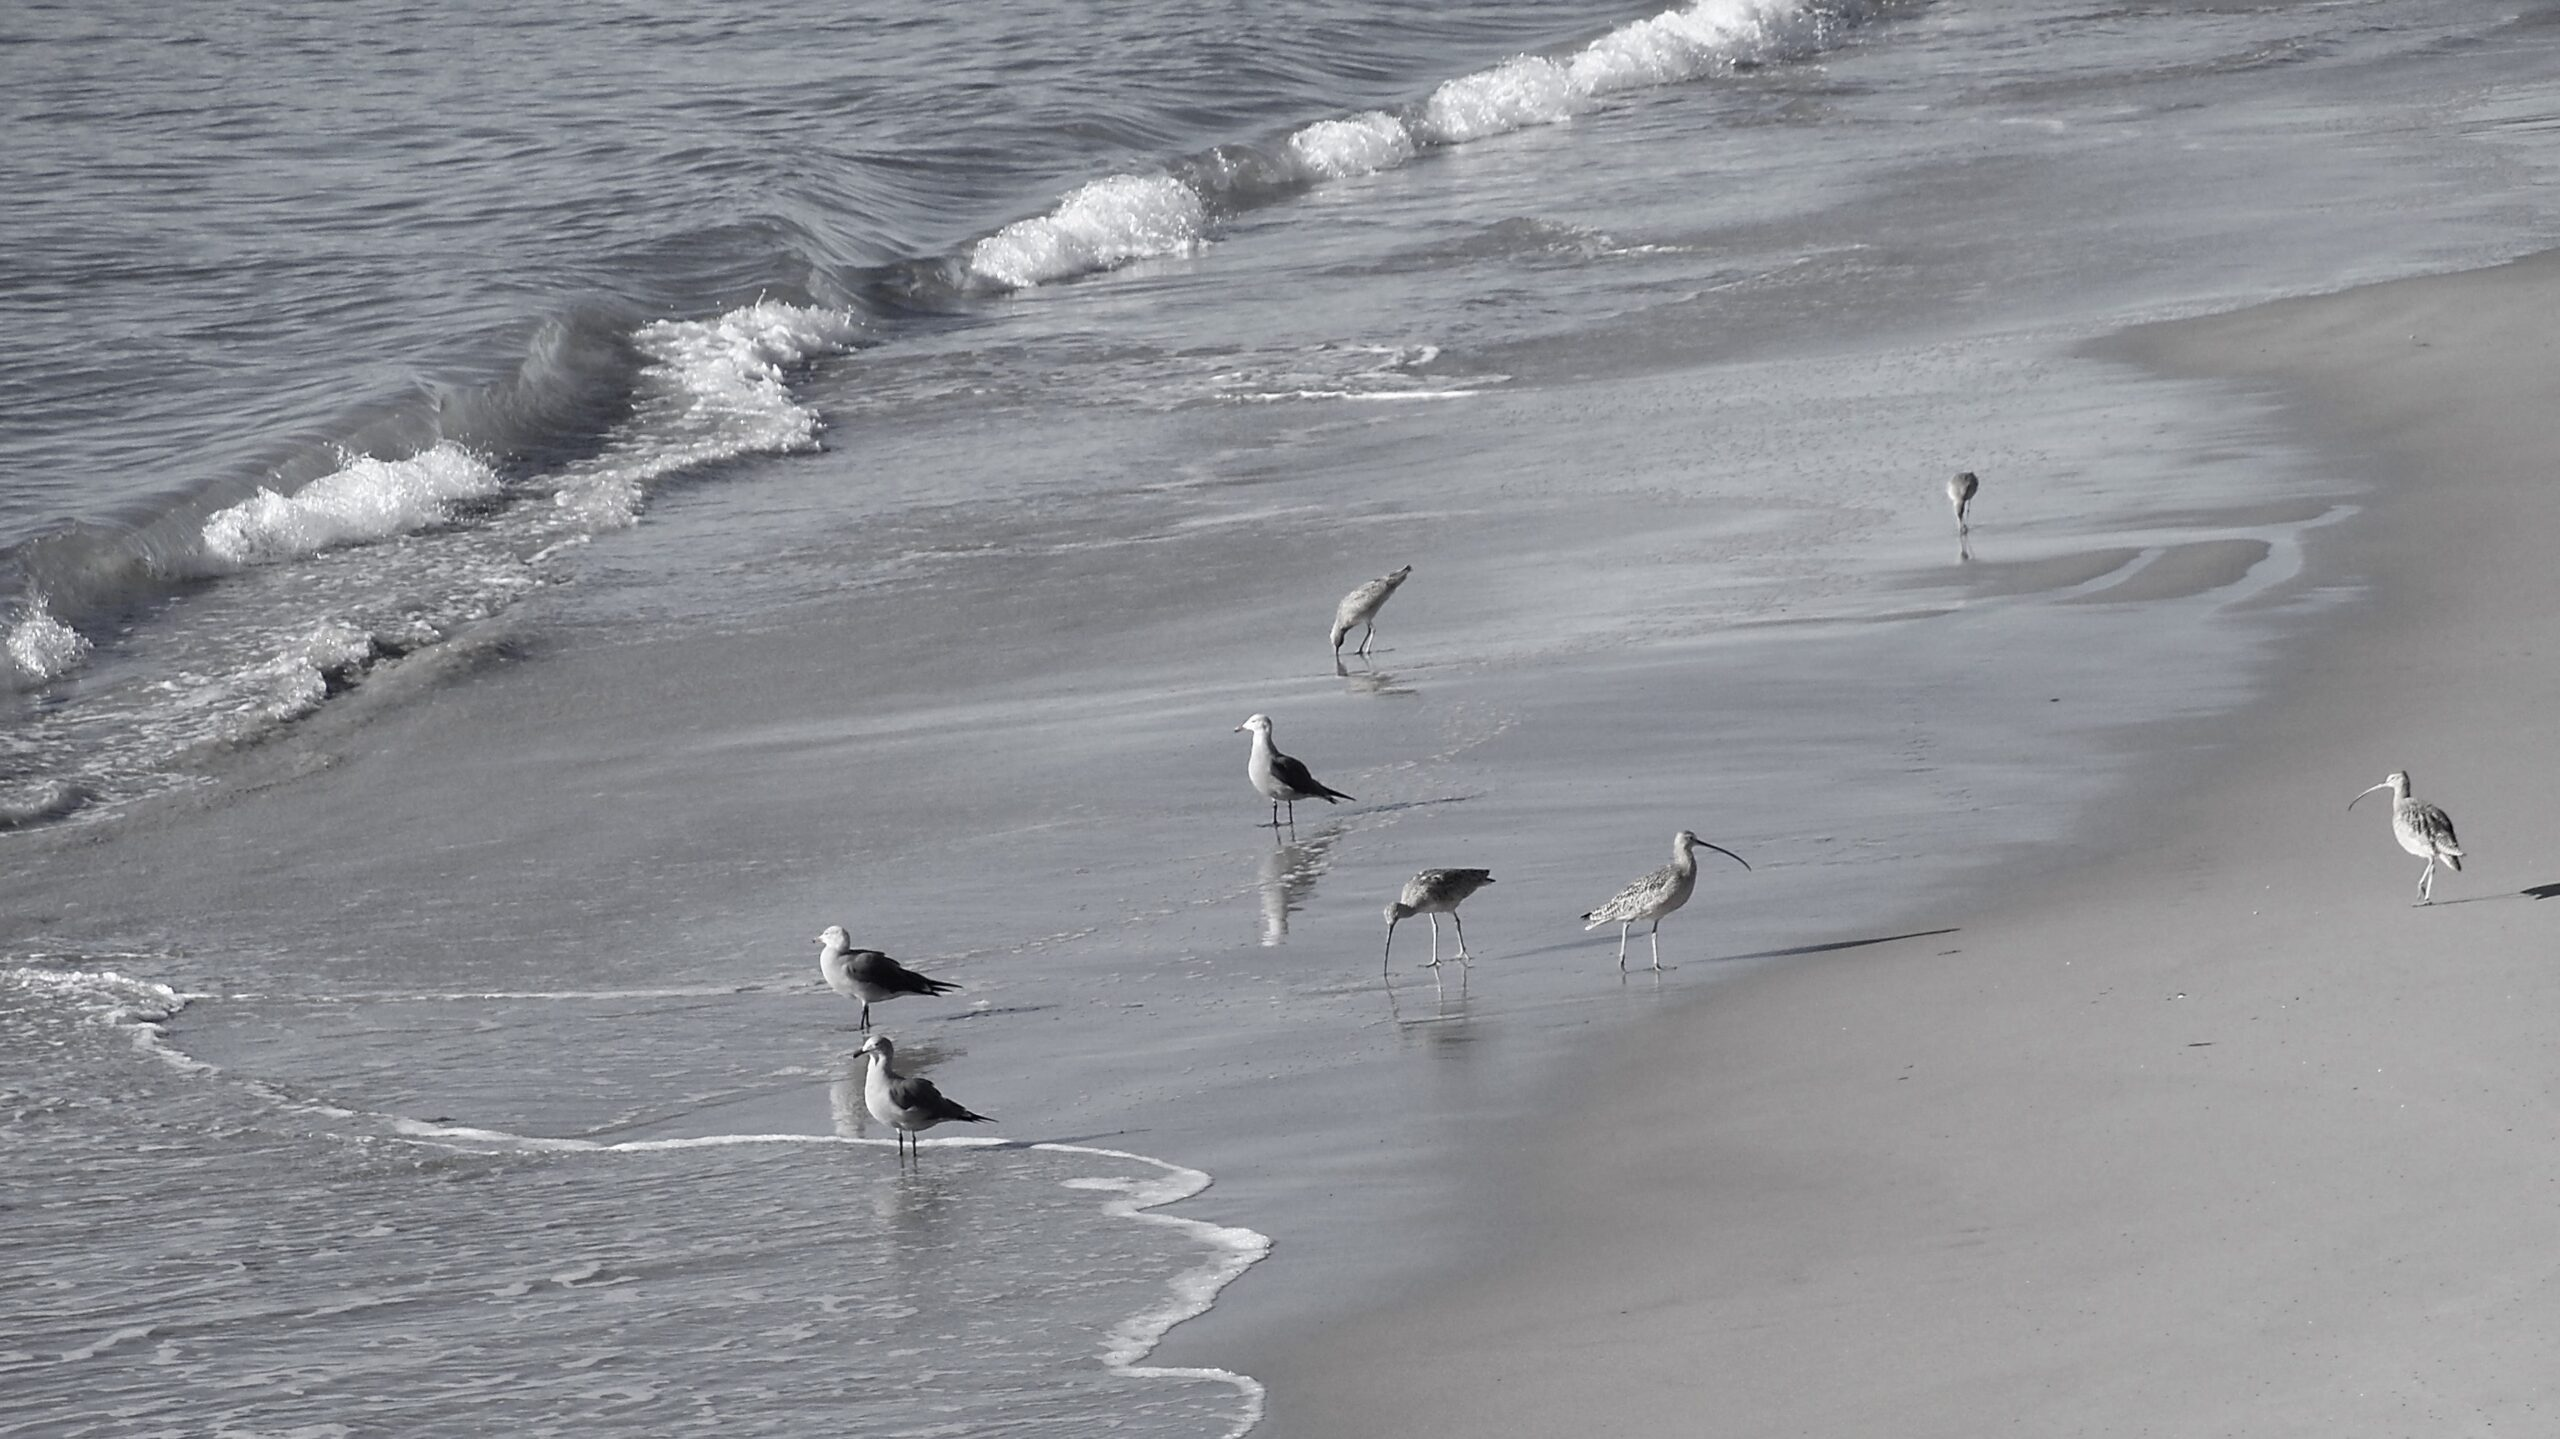 Birds at the edge of the surf in Santa Barbara